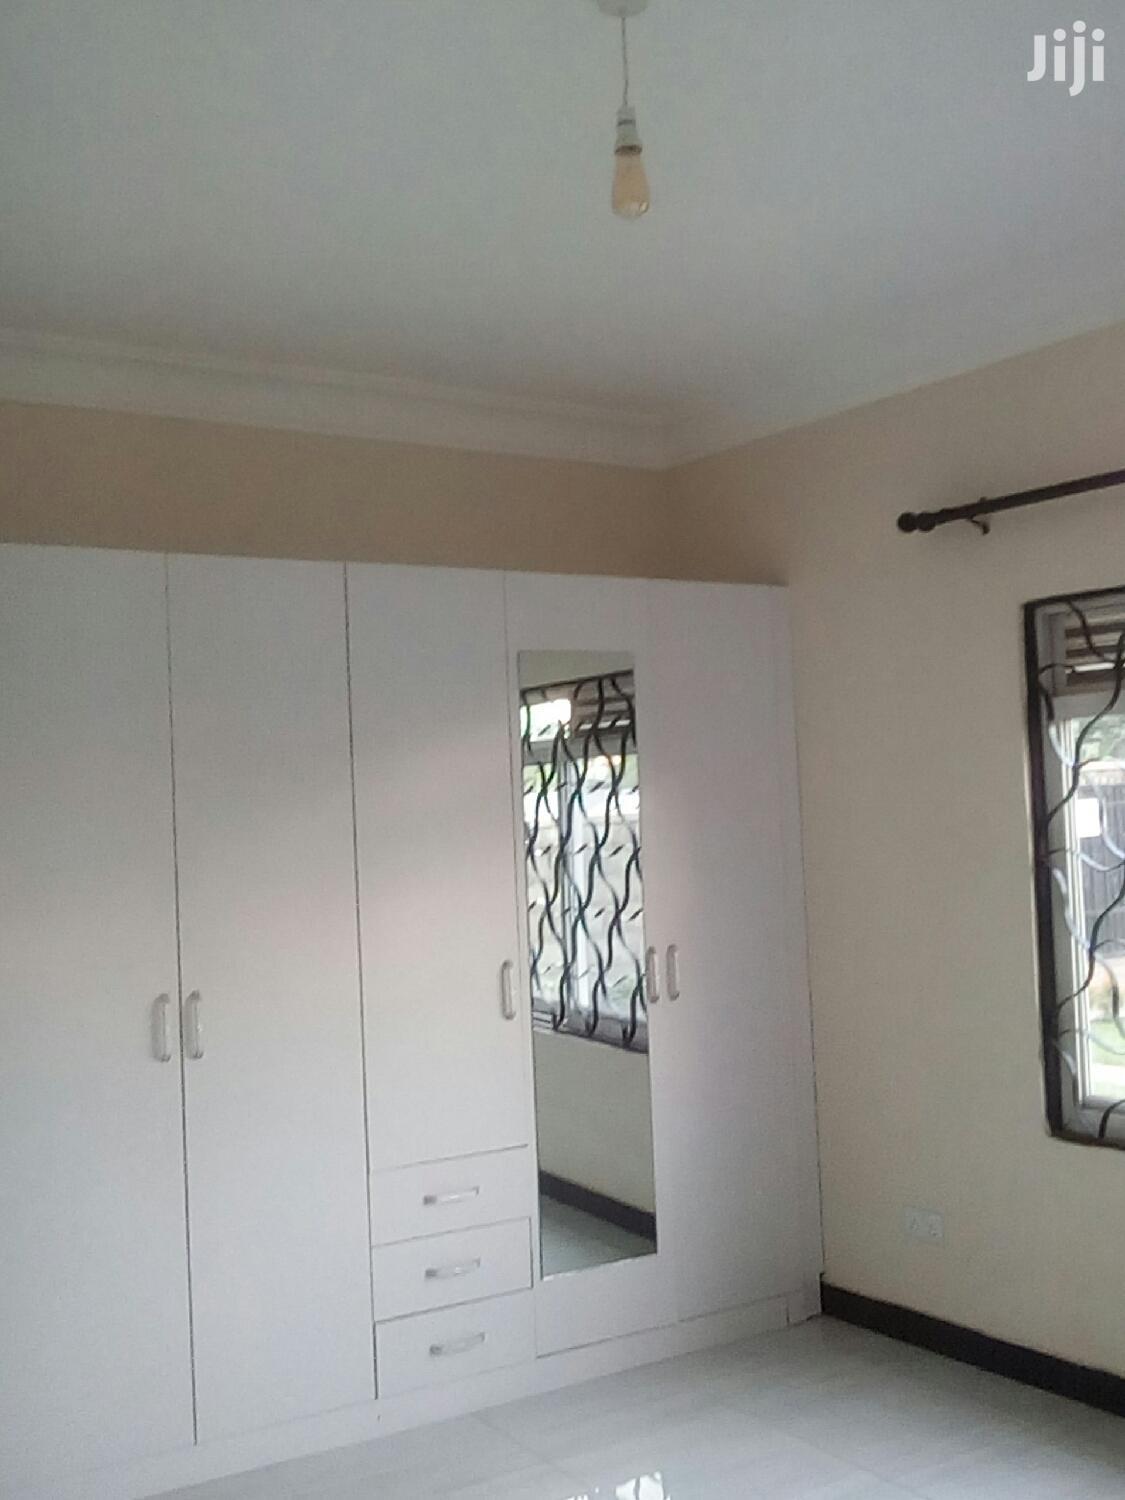 Standaloni House for Rent in Namugongo | Houses & Apartments For Rent for sale in Wakiso, Central Region, Uganda